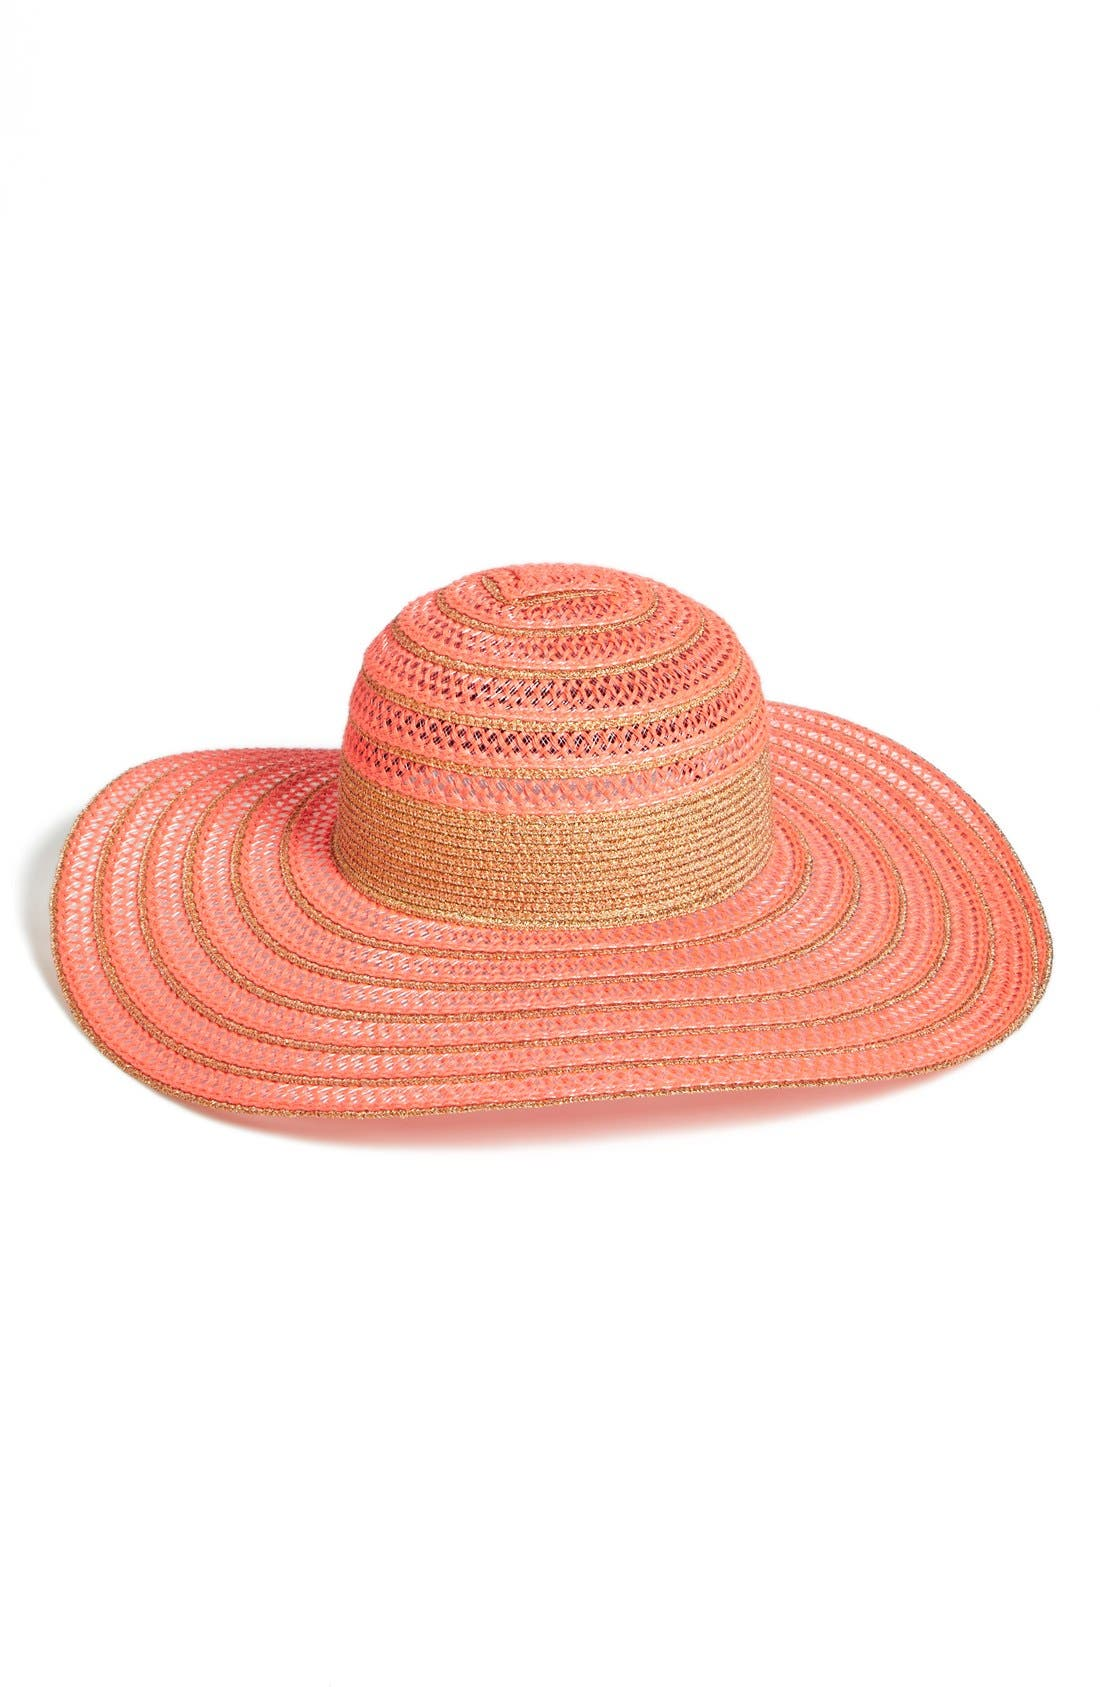 Alternate Image 1 Selected - PACKABLE METALLIC OPEN WEAVE FLOPPY HAT